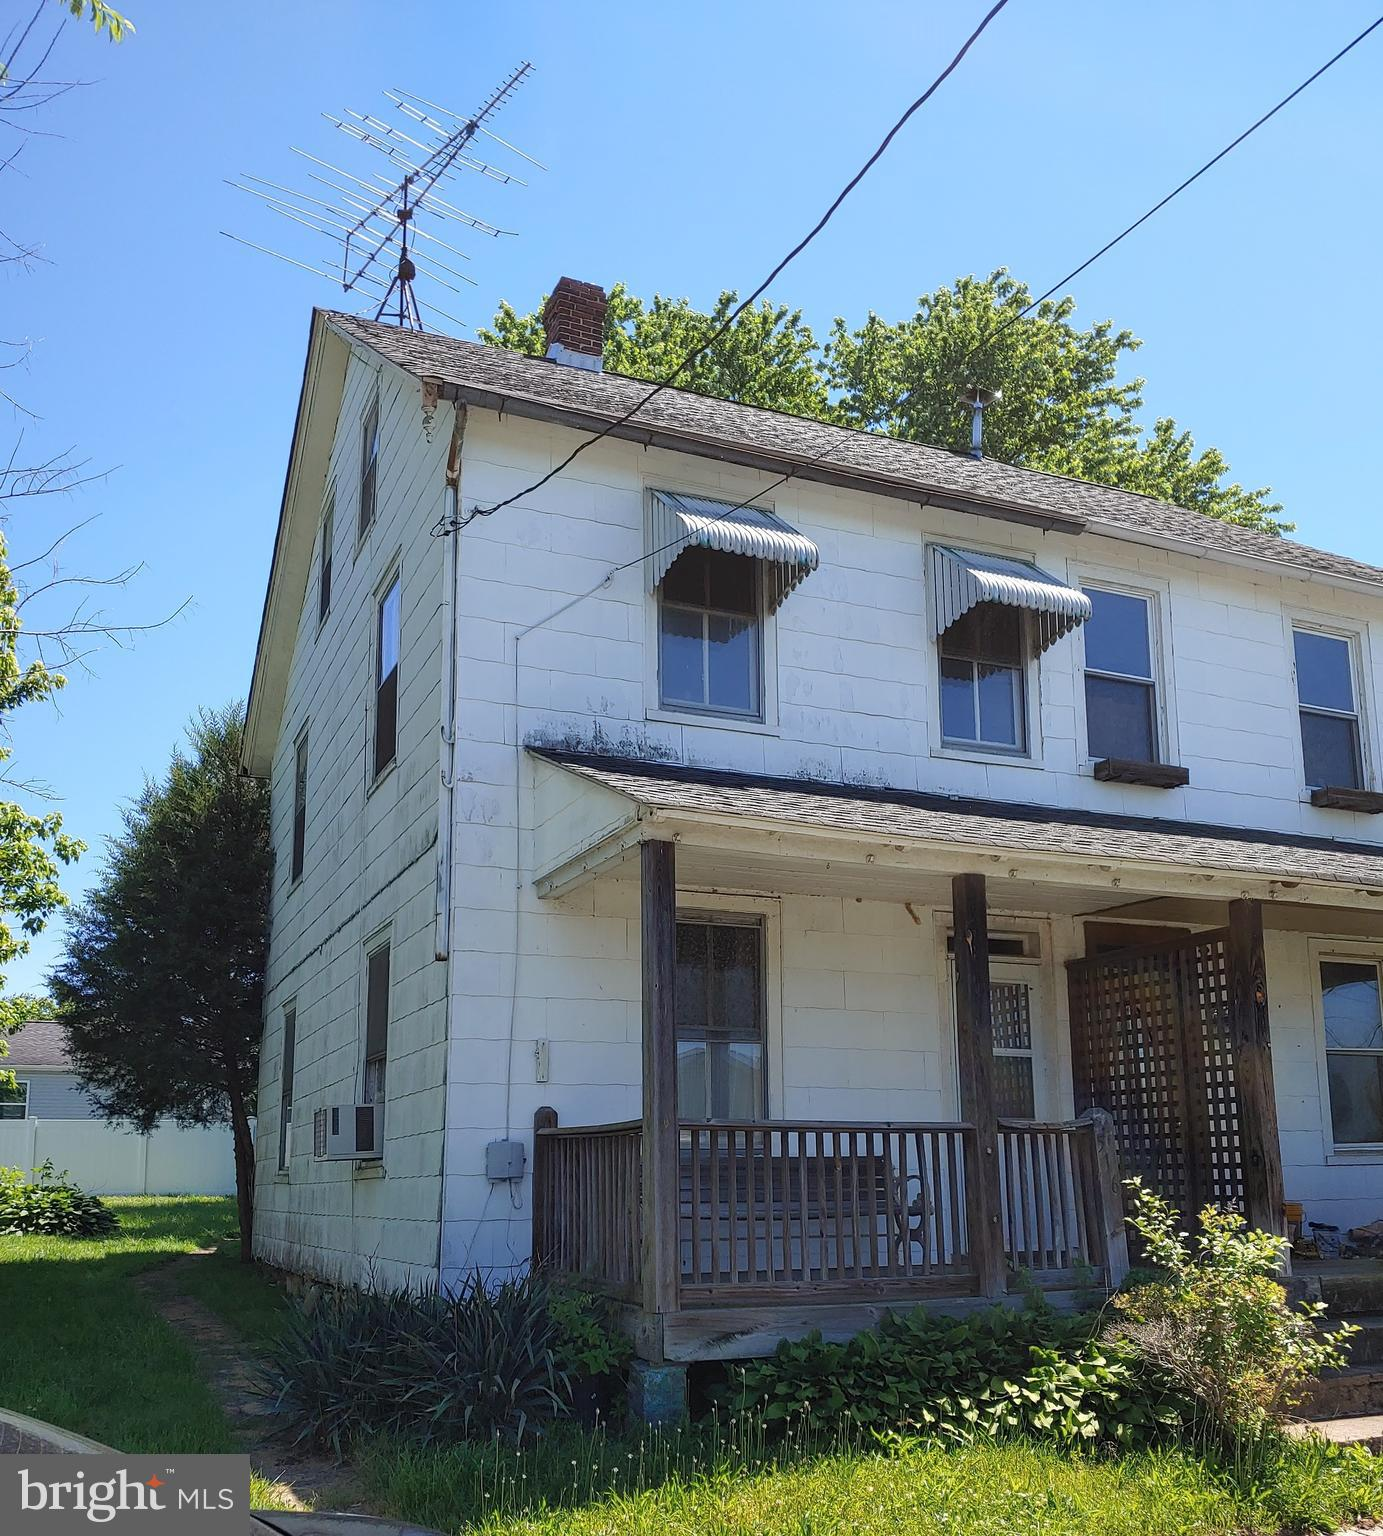 $5,000   LIST PRICE SUGGESTED OPENING BID AT AUCTION.** **NO PRE BID**.** AUCTION THURSDAY, JULY 23